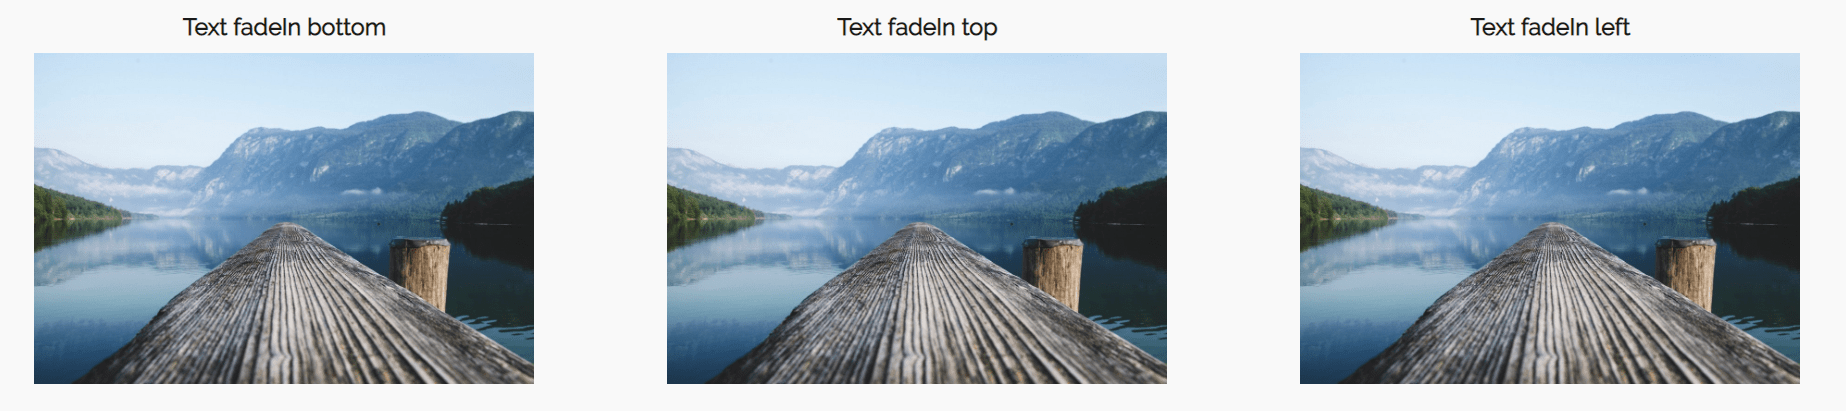 website design ideas - image overlay hover effects